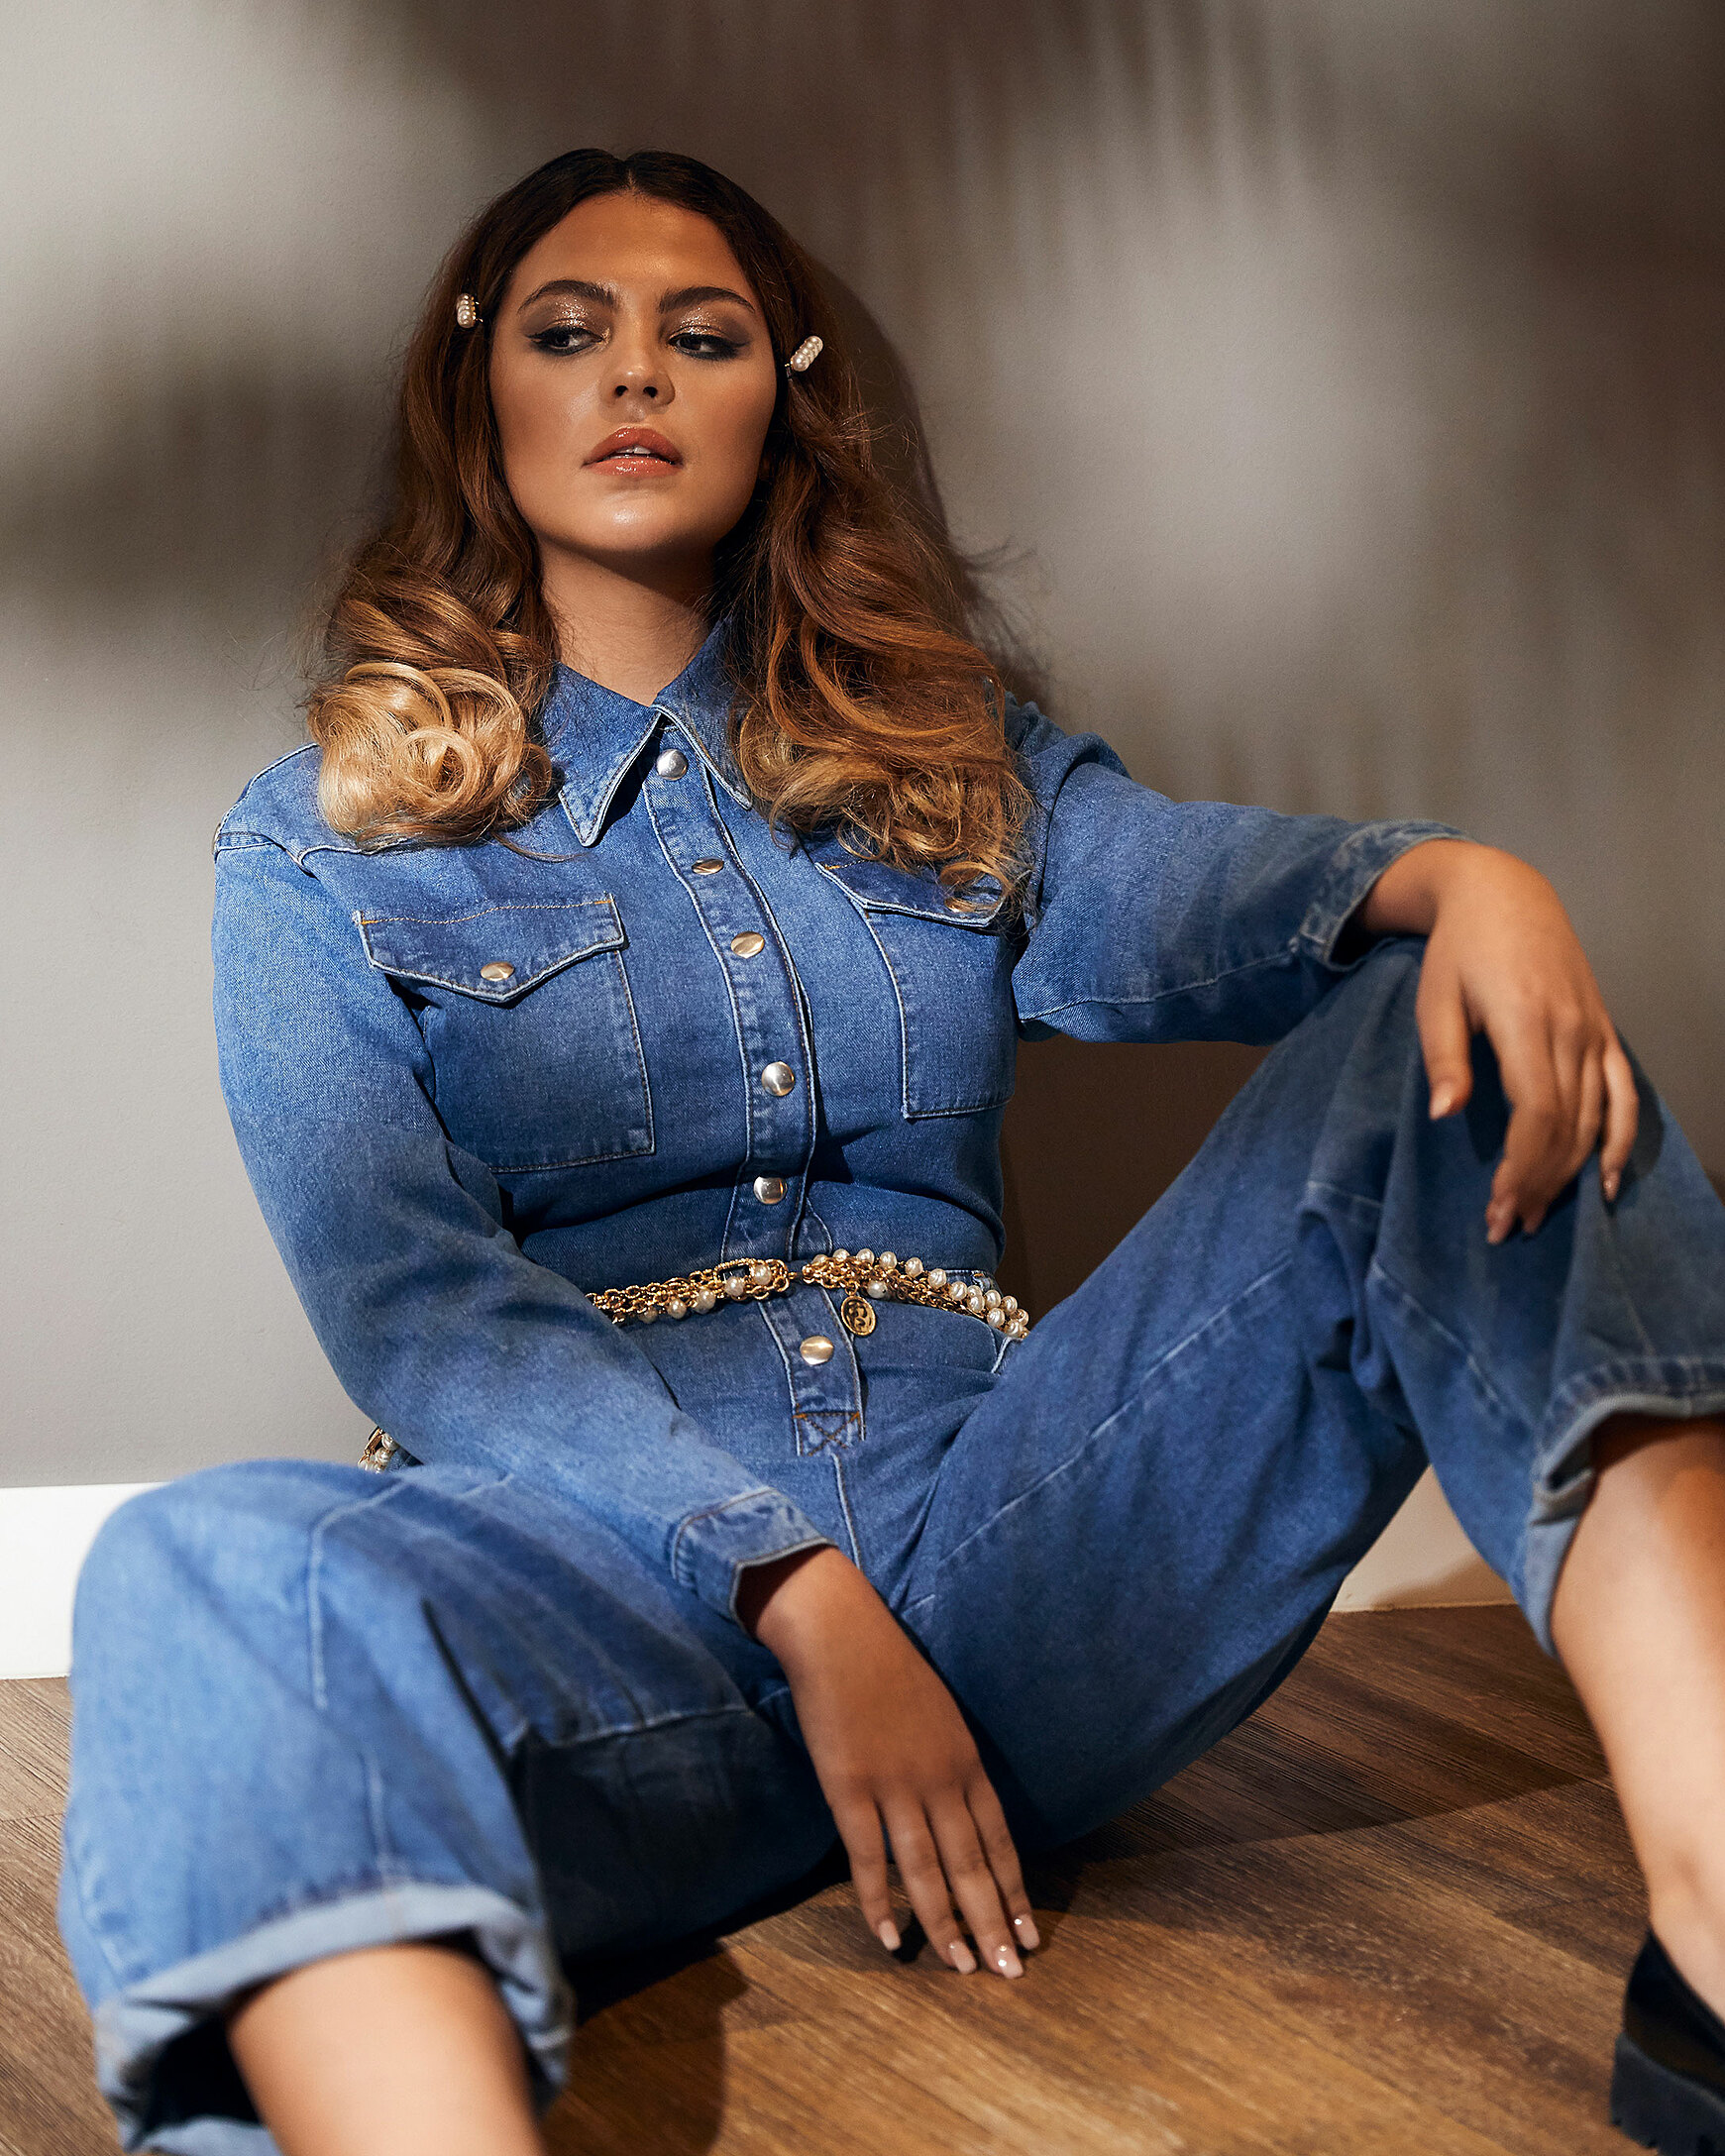 A brown hair model sits on the floor in a denim jumpsuit with a golden belt around her hips. Two white pearl clips complete her hairstyle